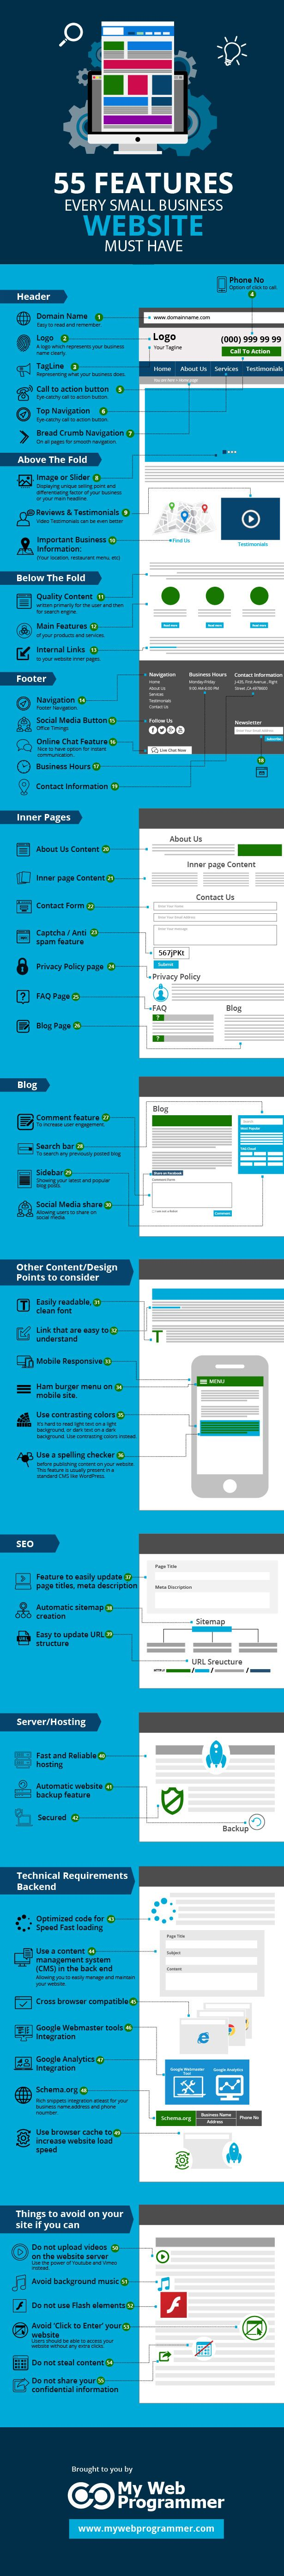 55 Features for a Successful Small Business Website [Infographic] -